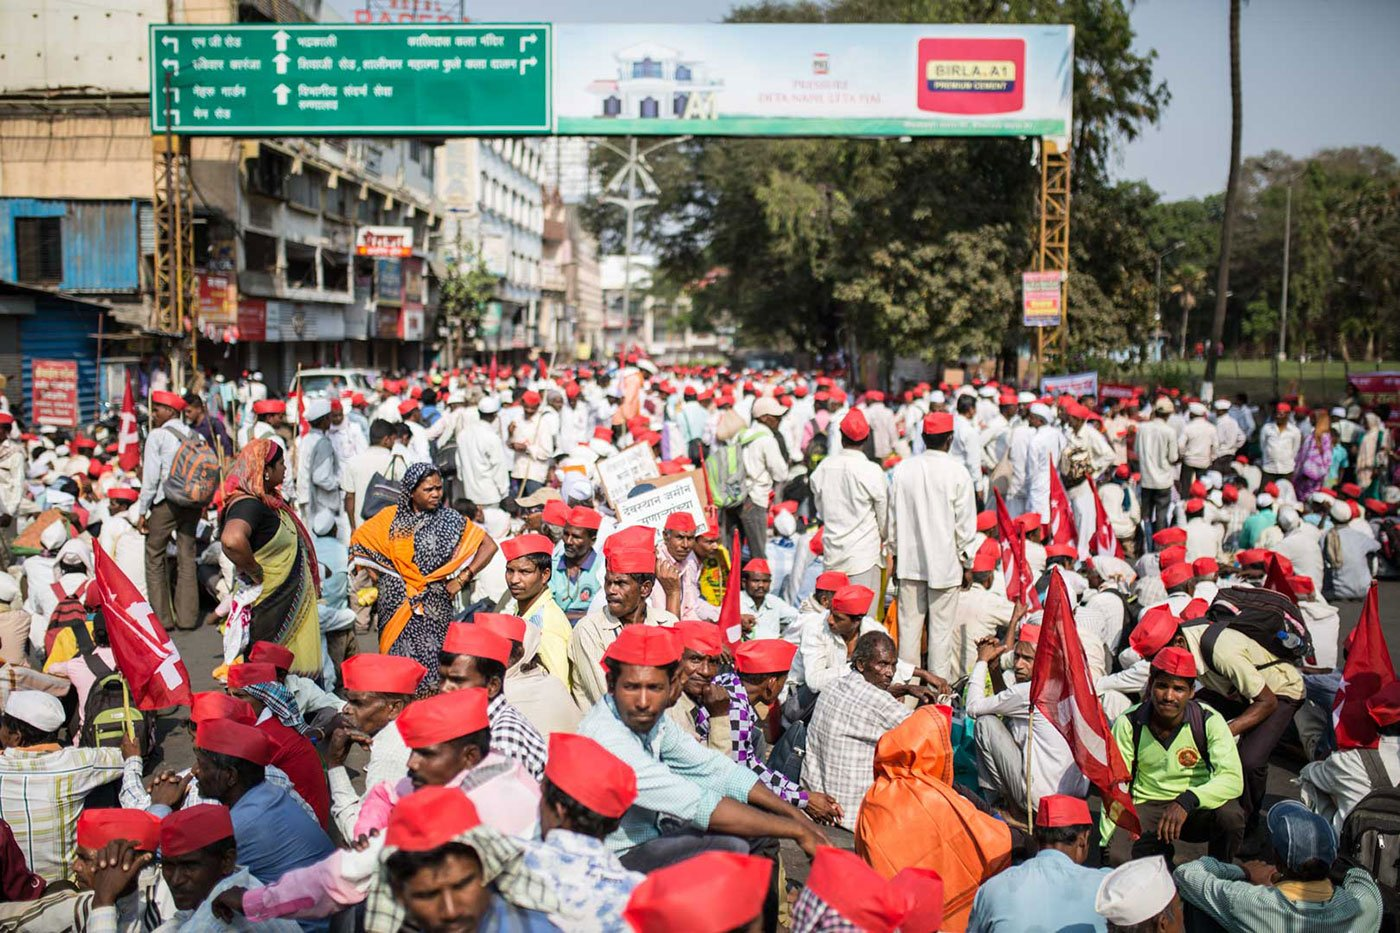 Thousands of farmers started the morcha from CBS Chowk in Nashik on March 6, to highlight their demands, which the government has repeatedly ignored.